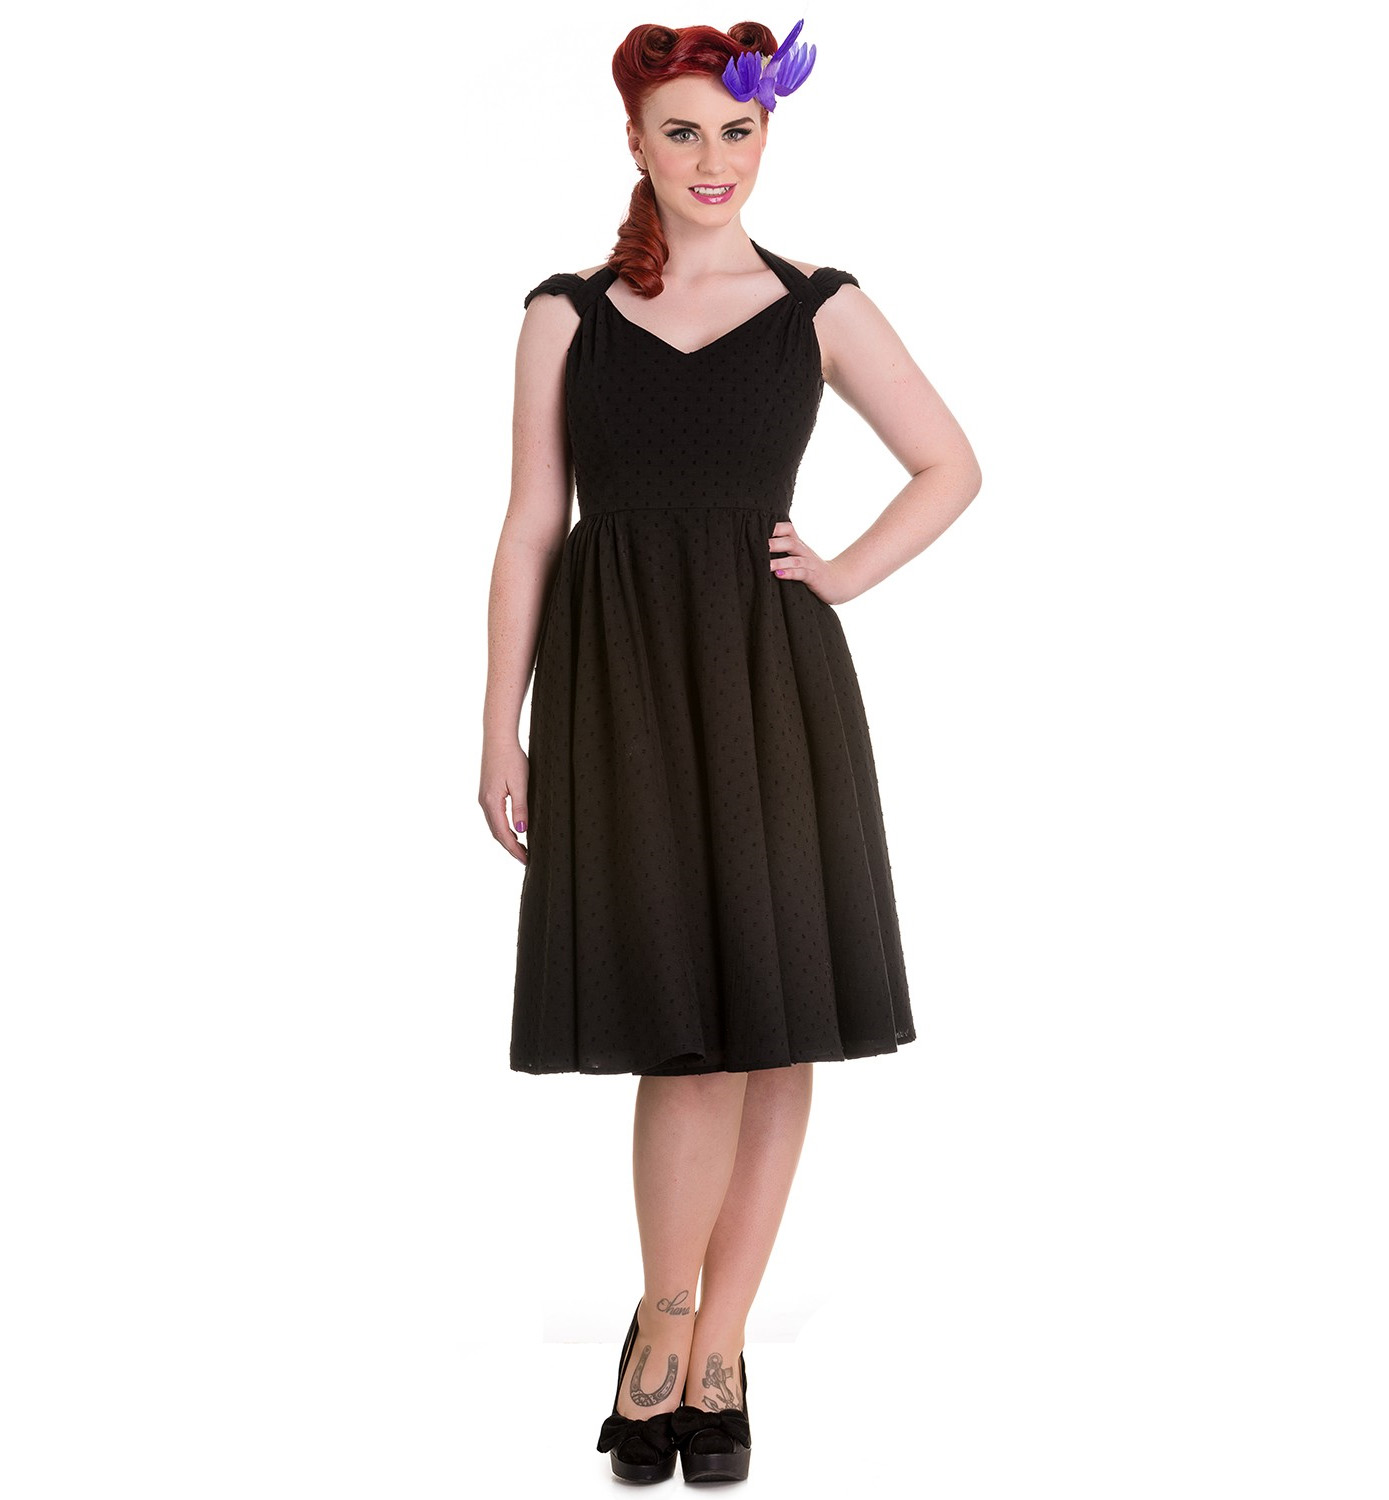 Hell-Bunny-Pin-Up-Summer-50s-Dress-Vintage-Rockabilly-EVELINE-Black-All-Sizes thumbnail 9